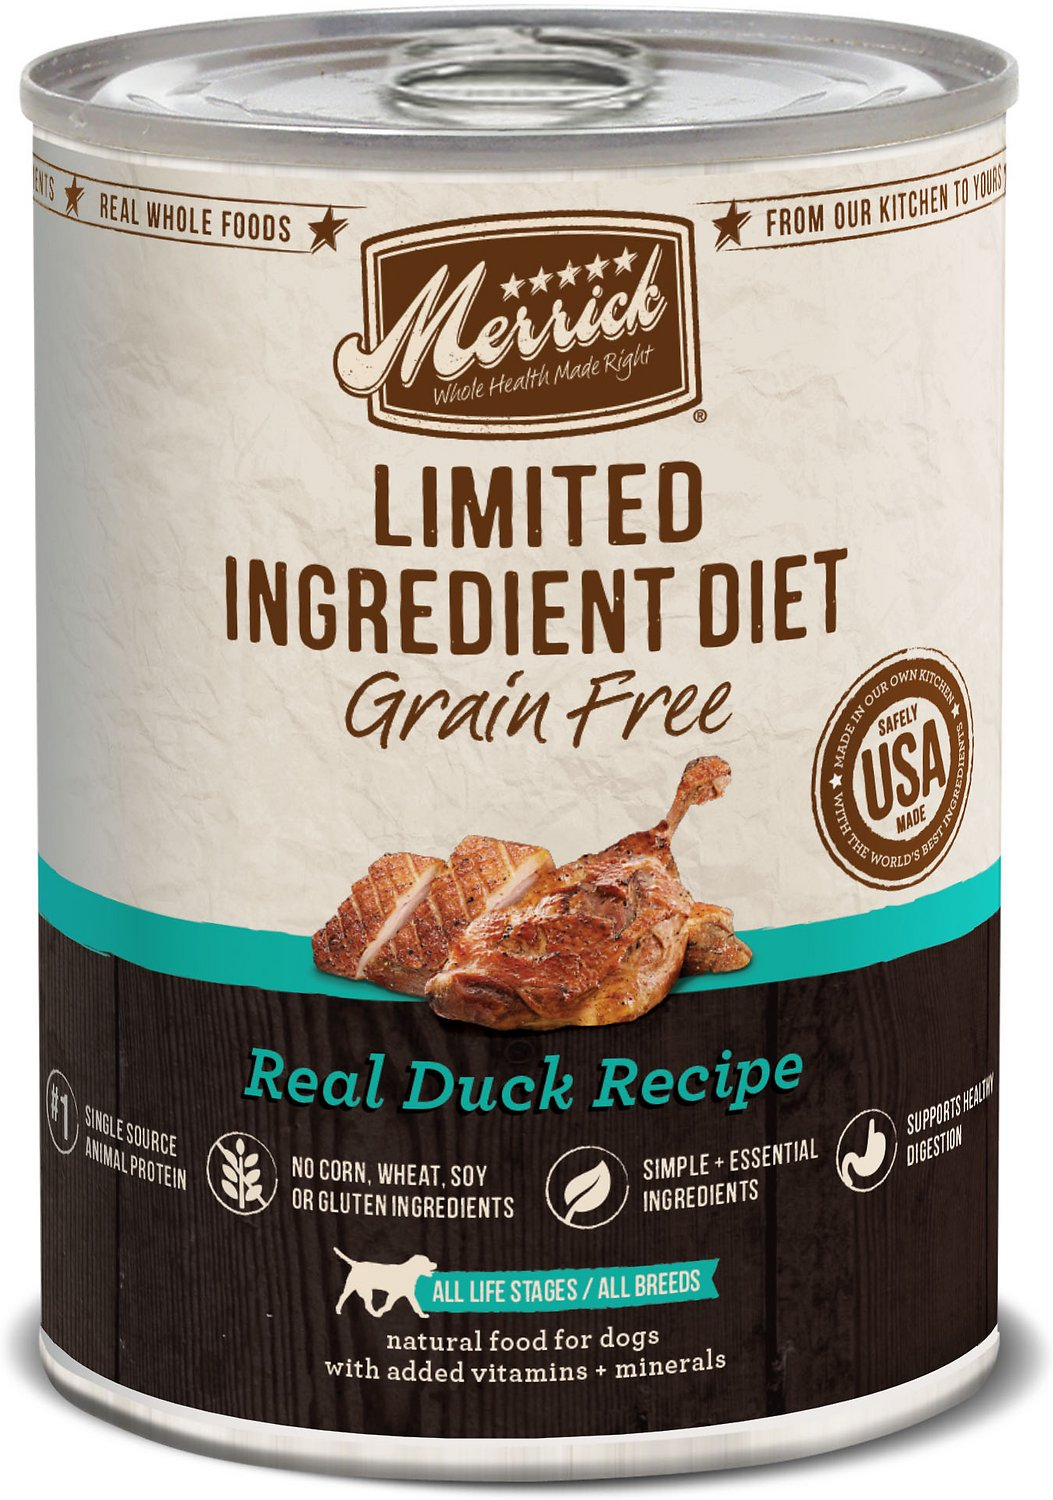 Merrick Limited Ingredient Diet Grain-Free Real Duck Recipe Canned Dog Food, 12.7-oz